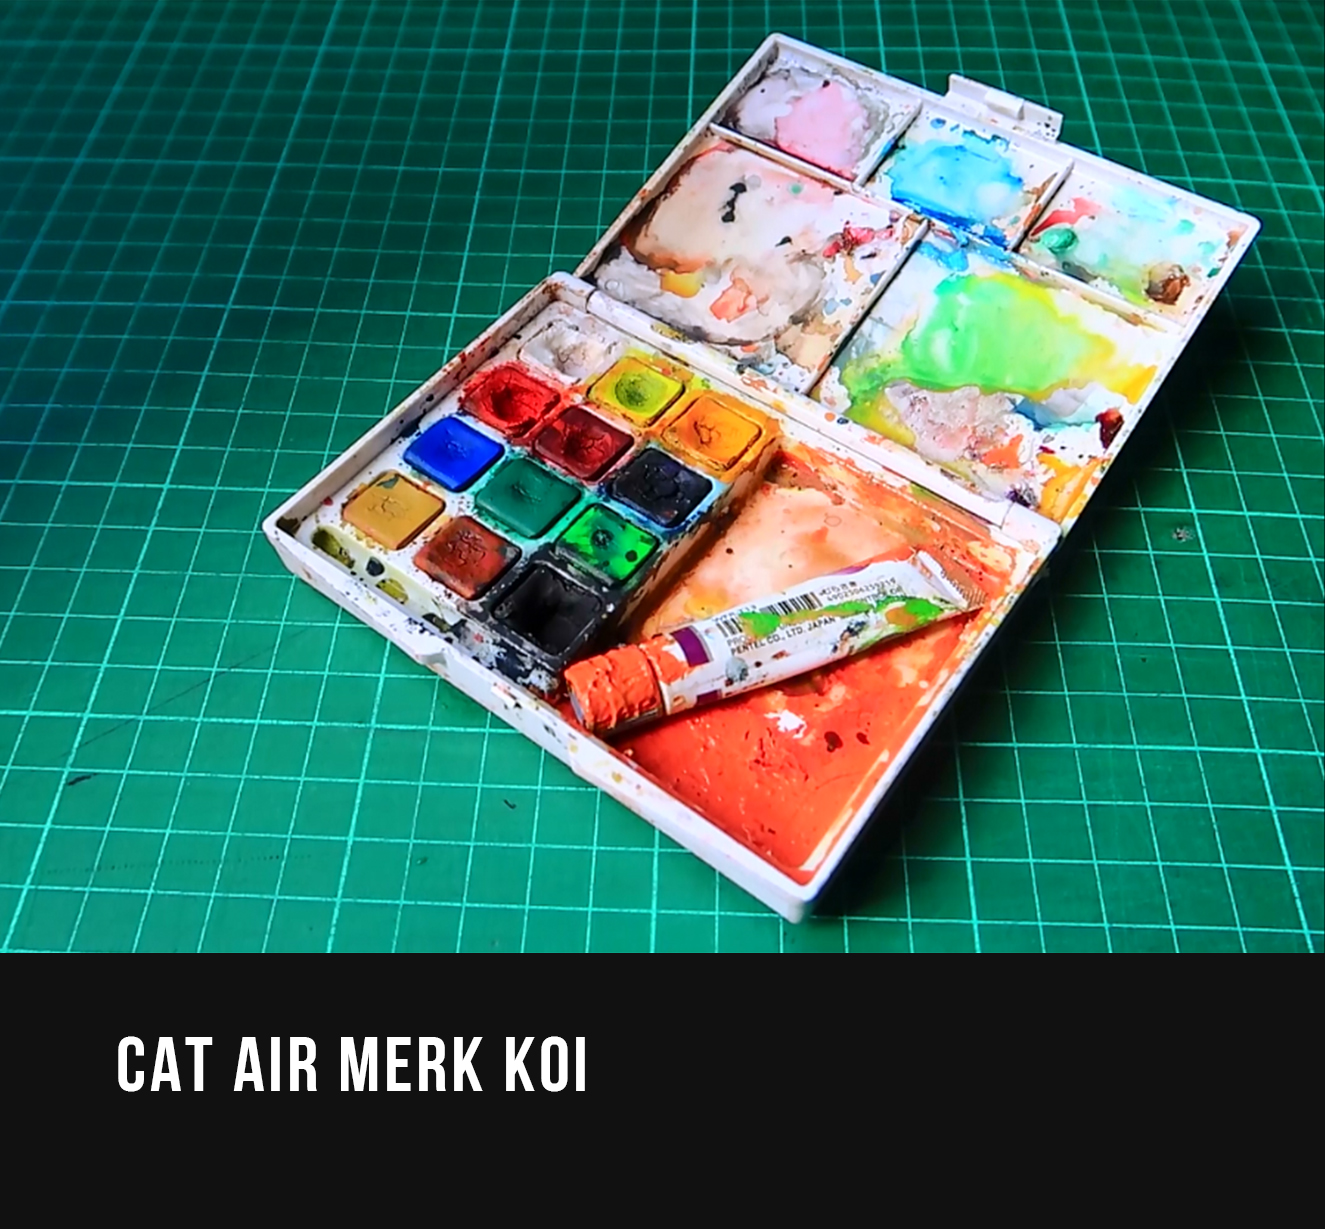 CAT AIR MERK KOI